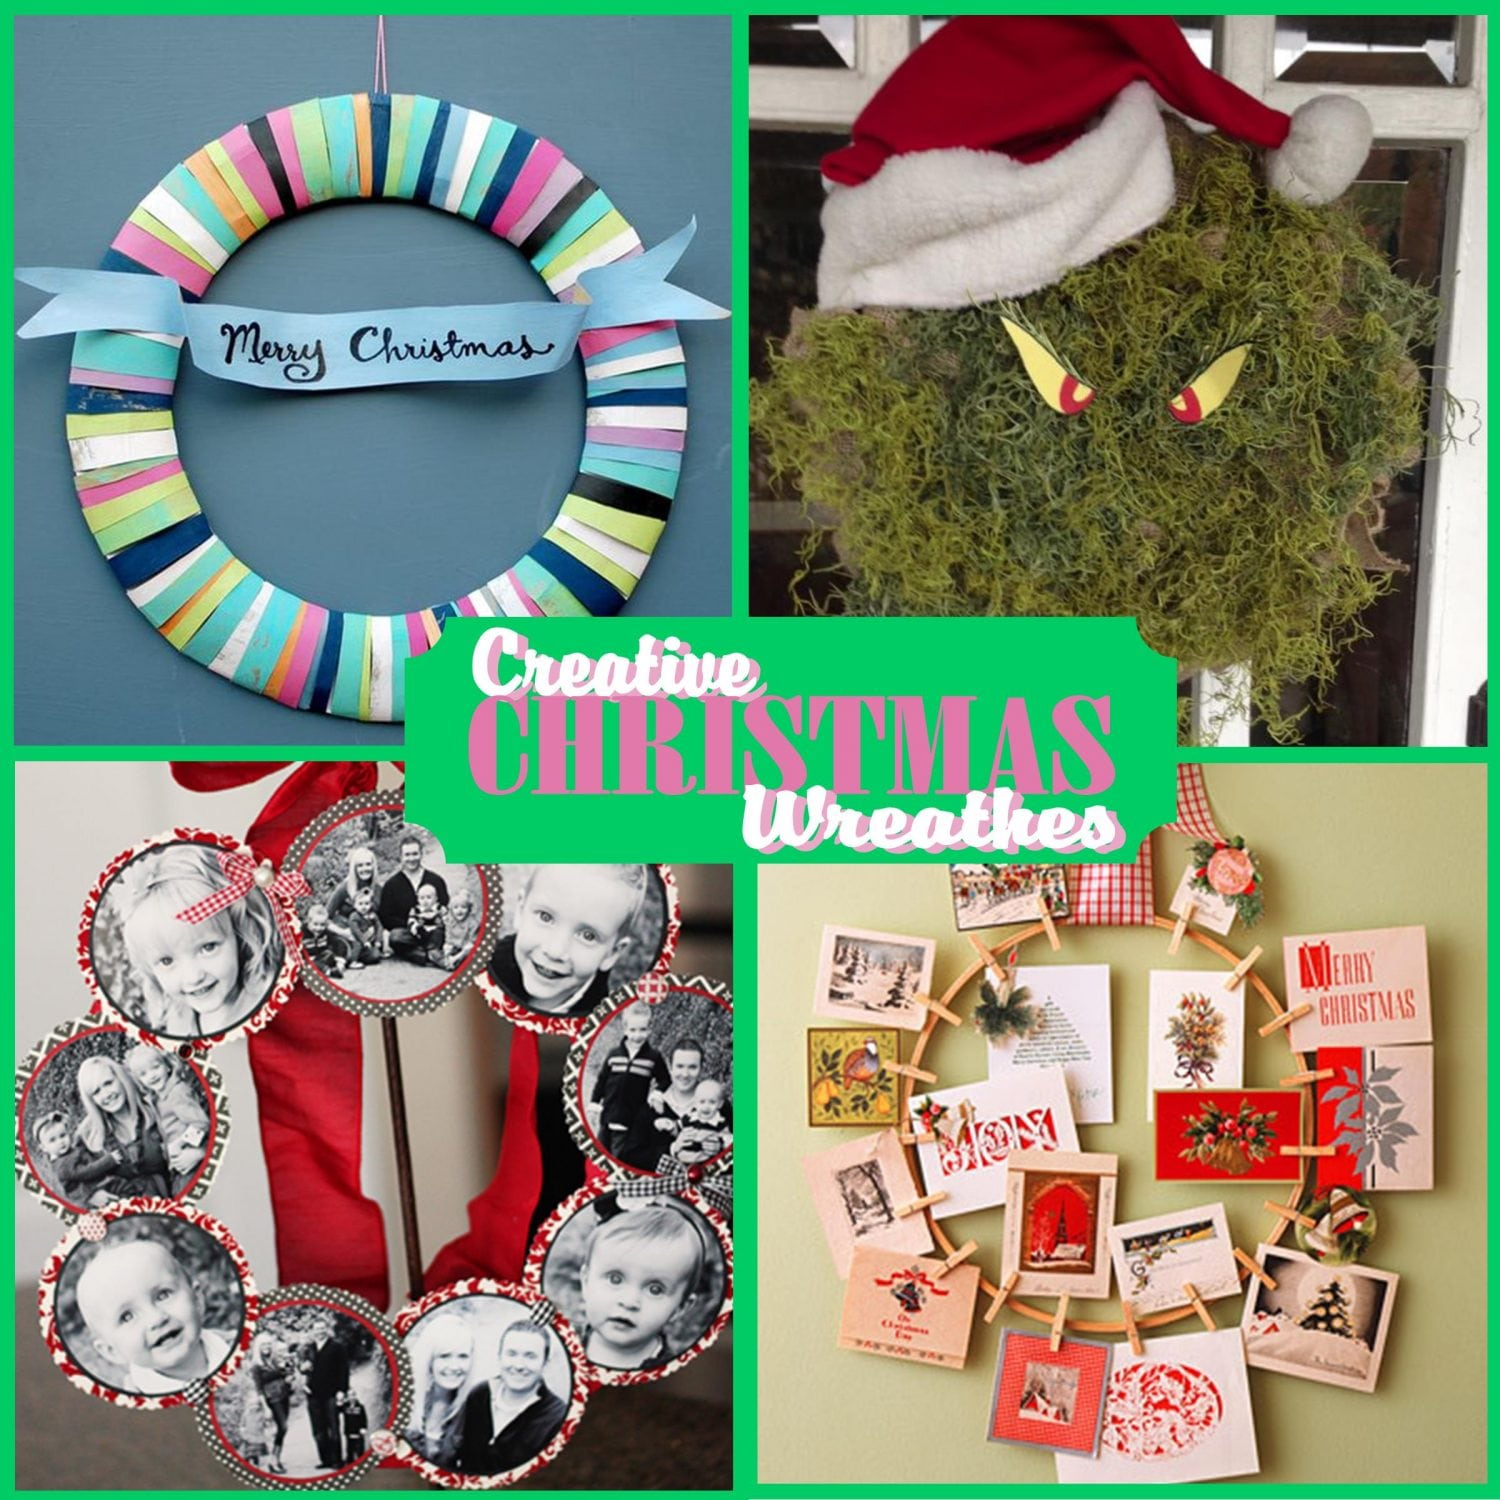 Christmas Wreath: Hang some Holiday Cheer on your door